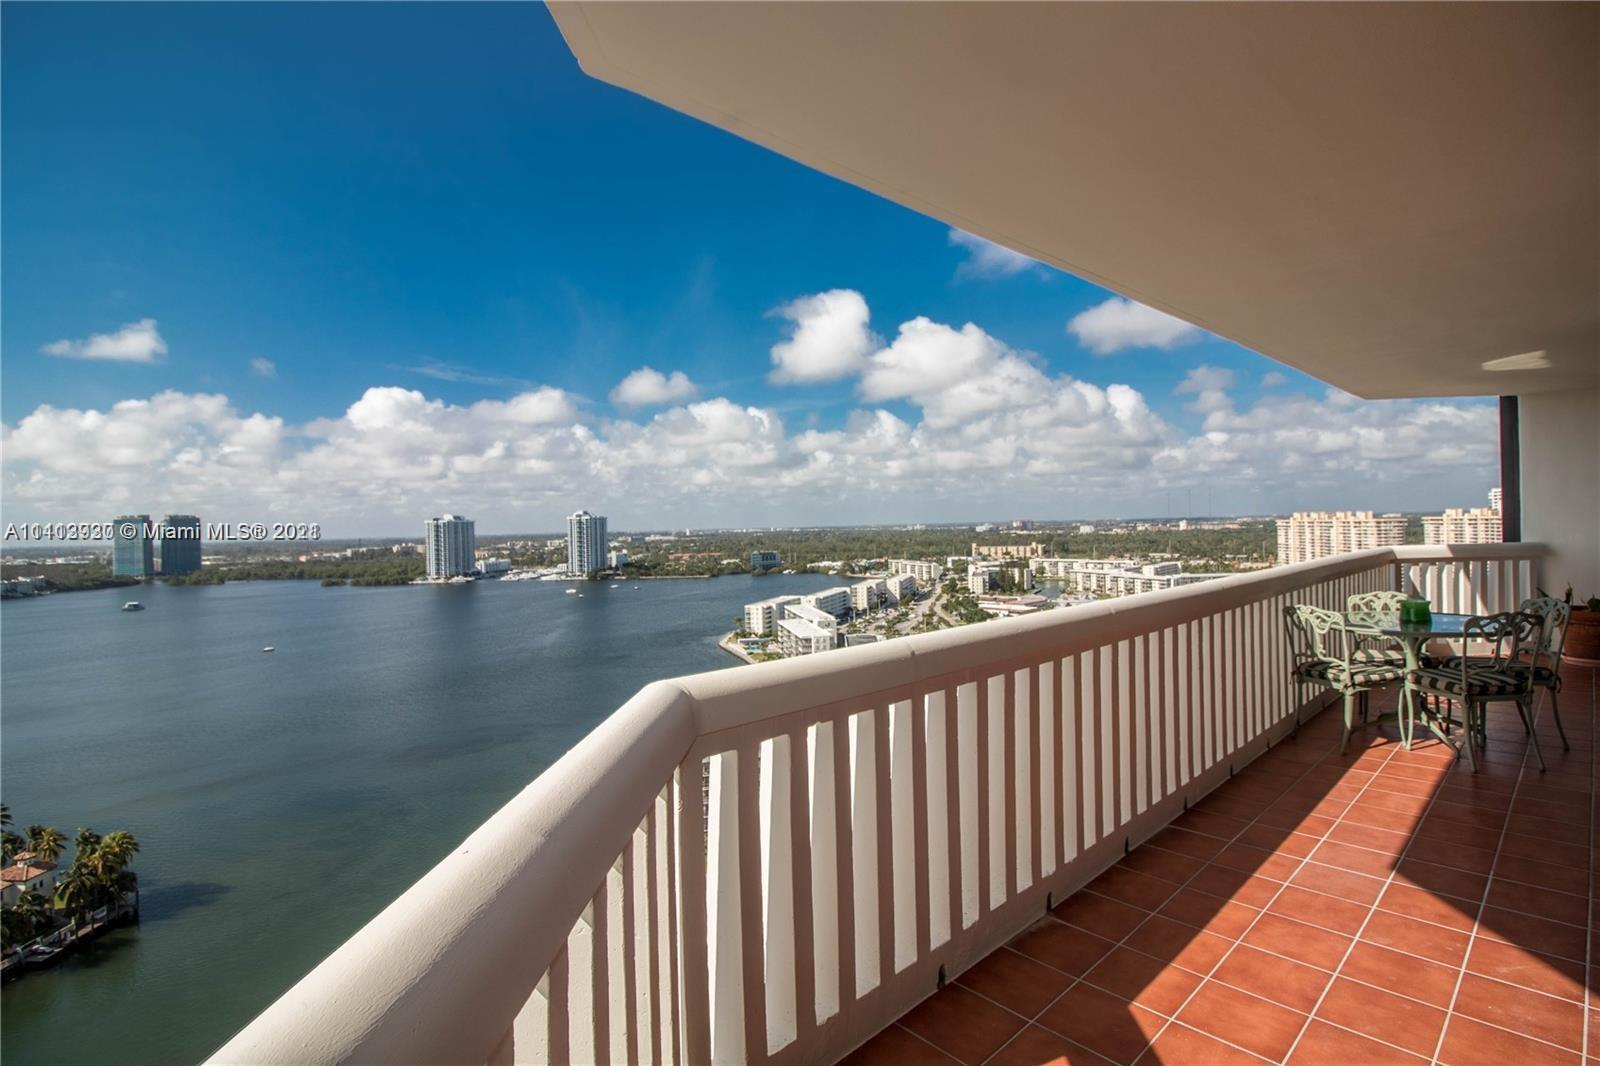 WELCOME TO WILLIAMS ISLAND EXCLUSIVE LOCATION IN AVENTURA!!THE FLORIDA RIVIERA NESTLED ON 84 ACRES I